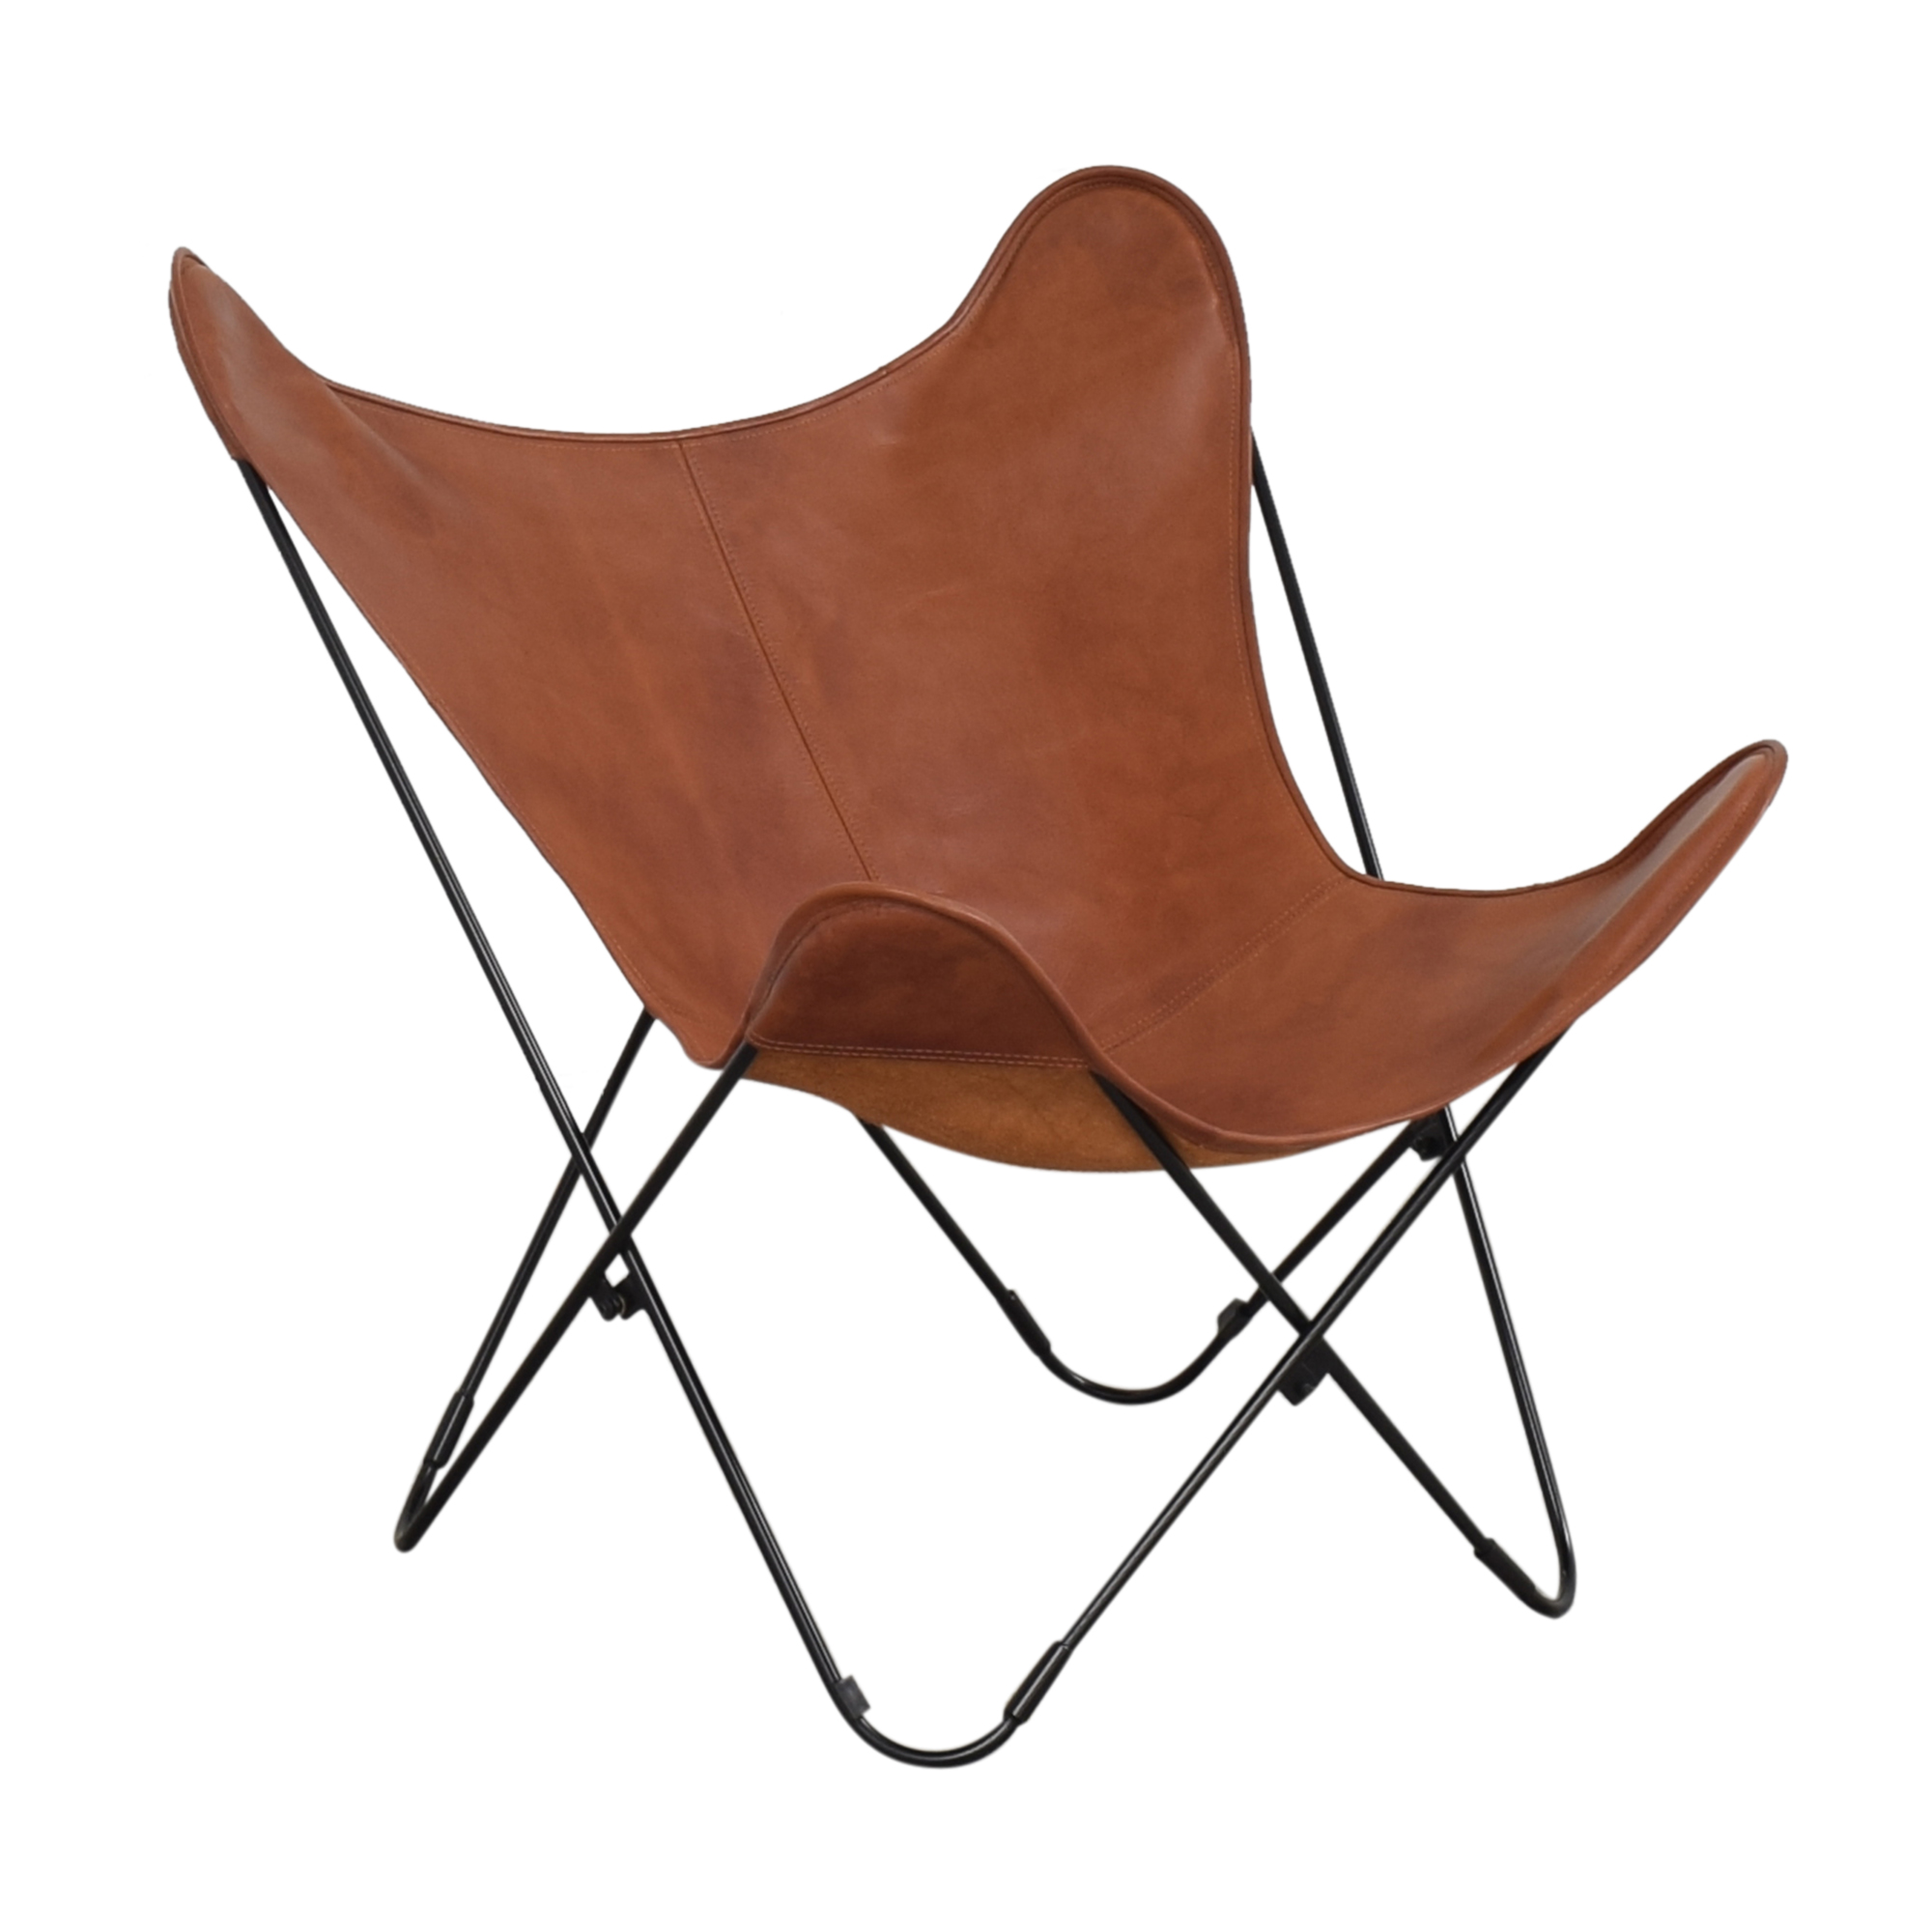 The Citizenry The Citizenry Palermo Accent Chair price